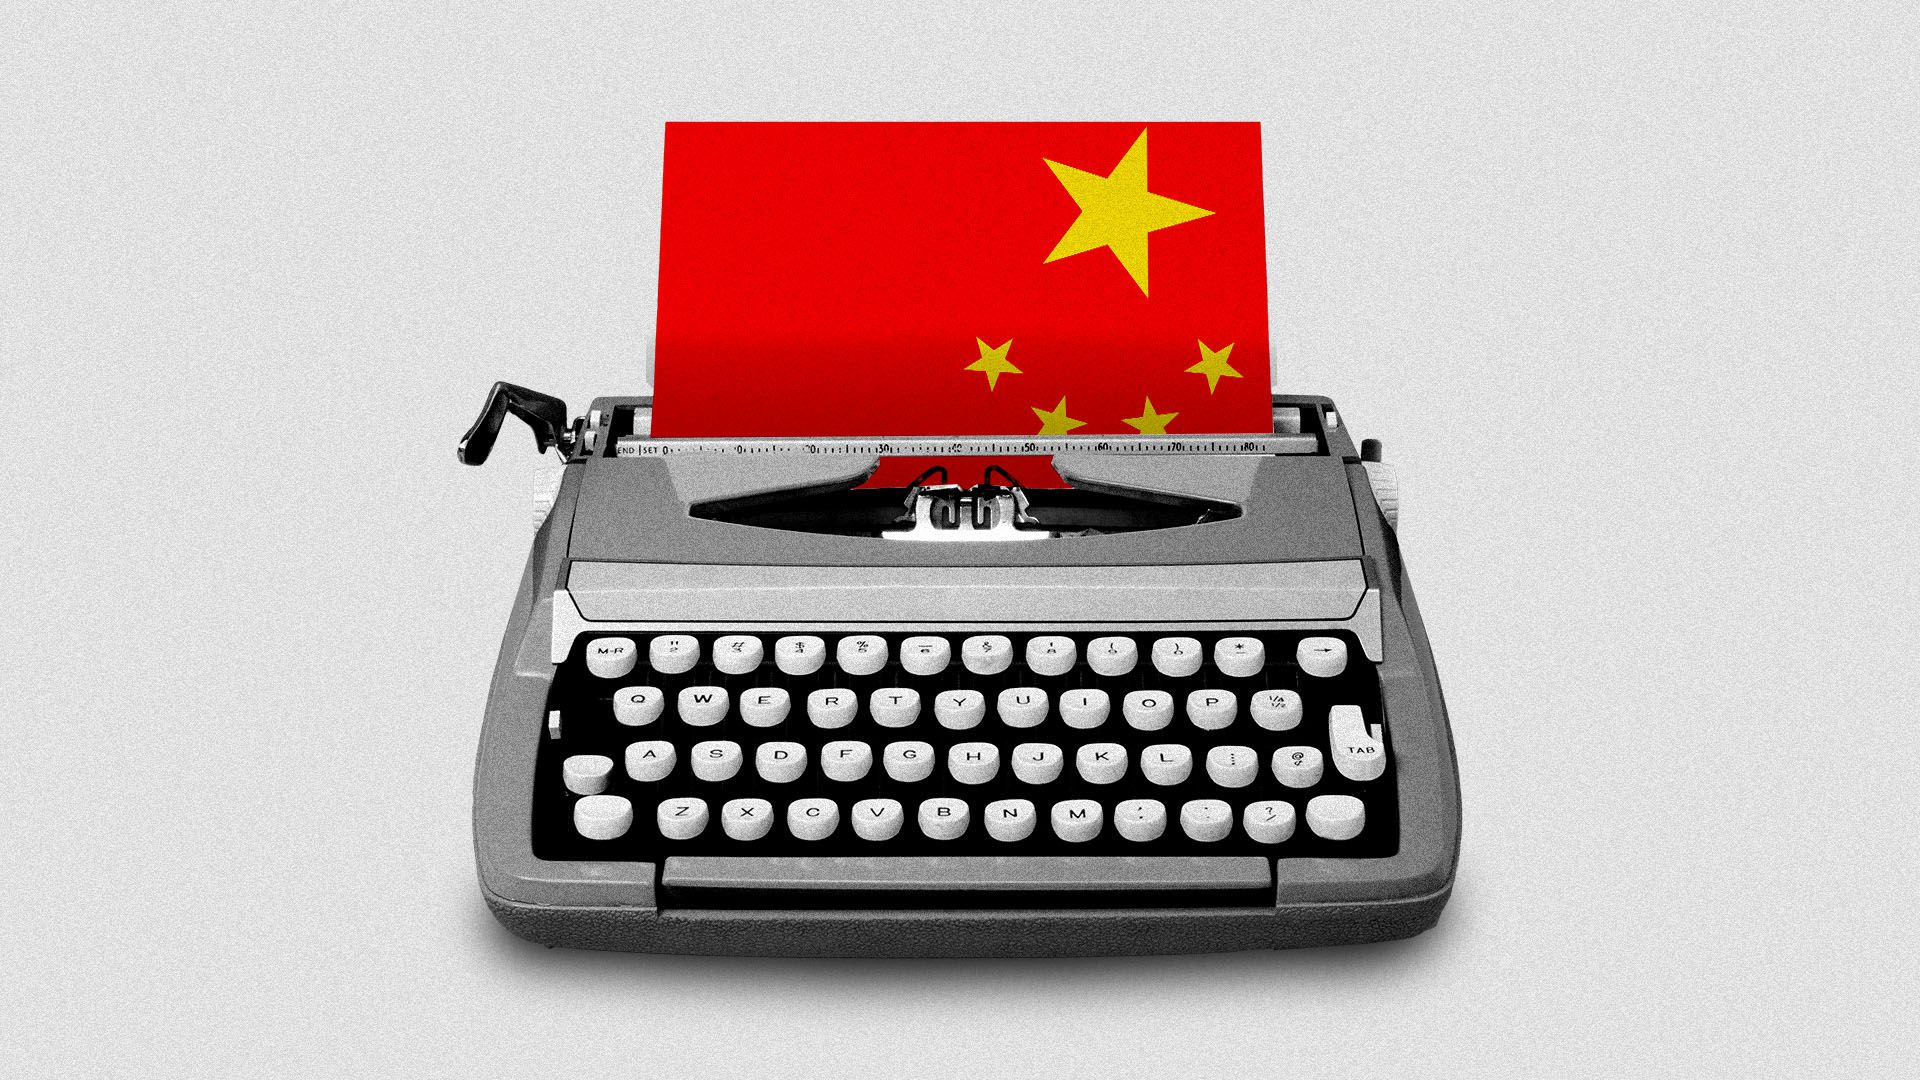 Illustration of typewriter typing out a Chinese flag